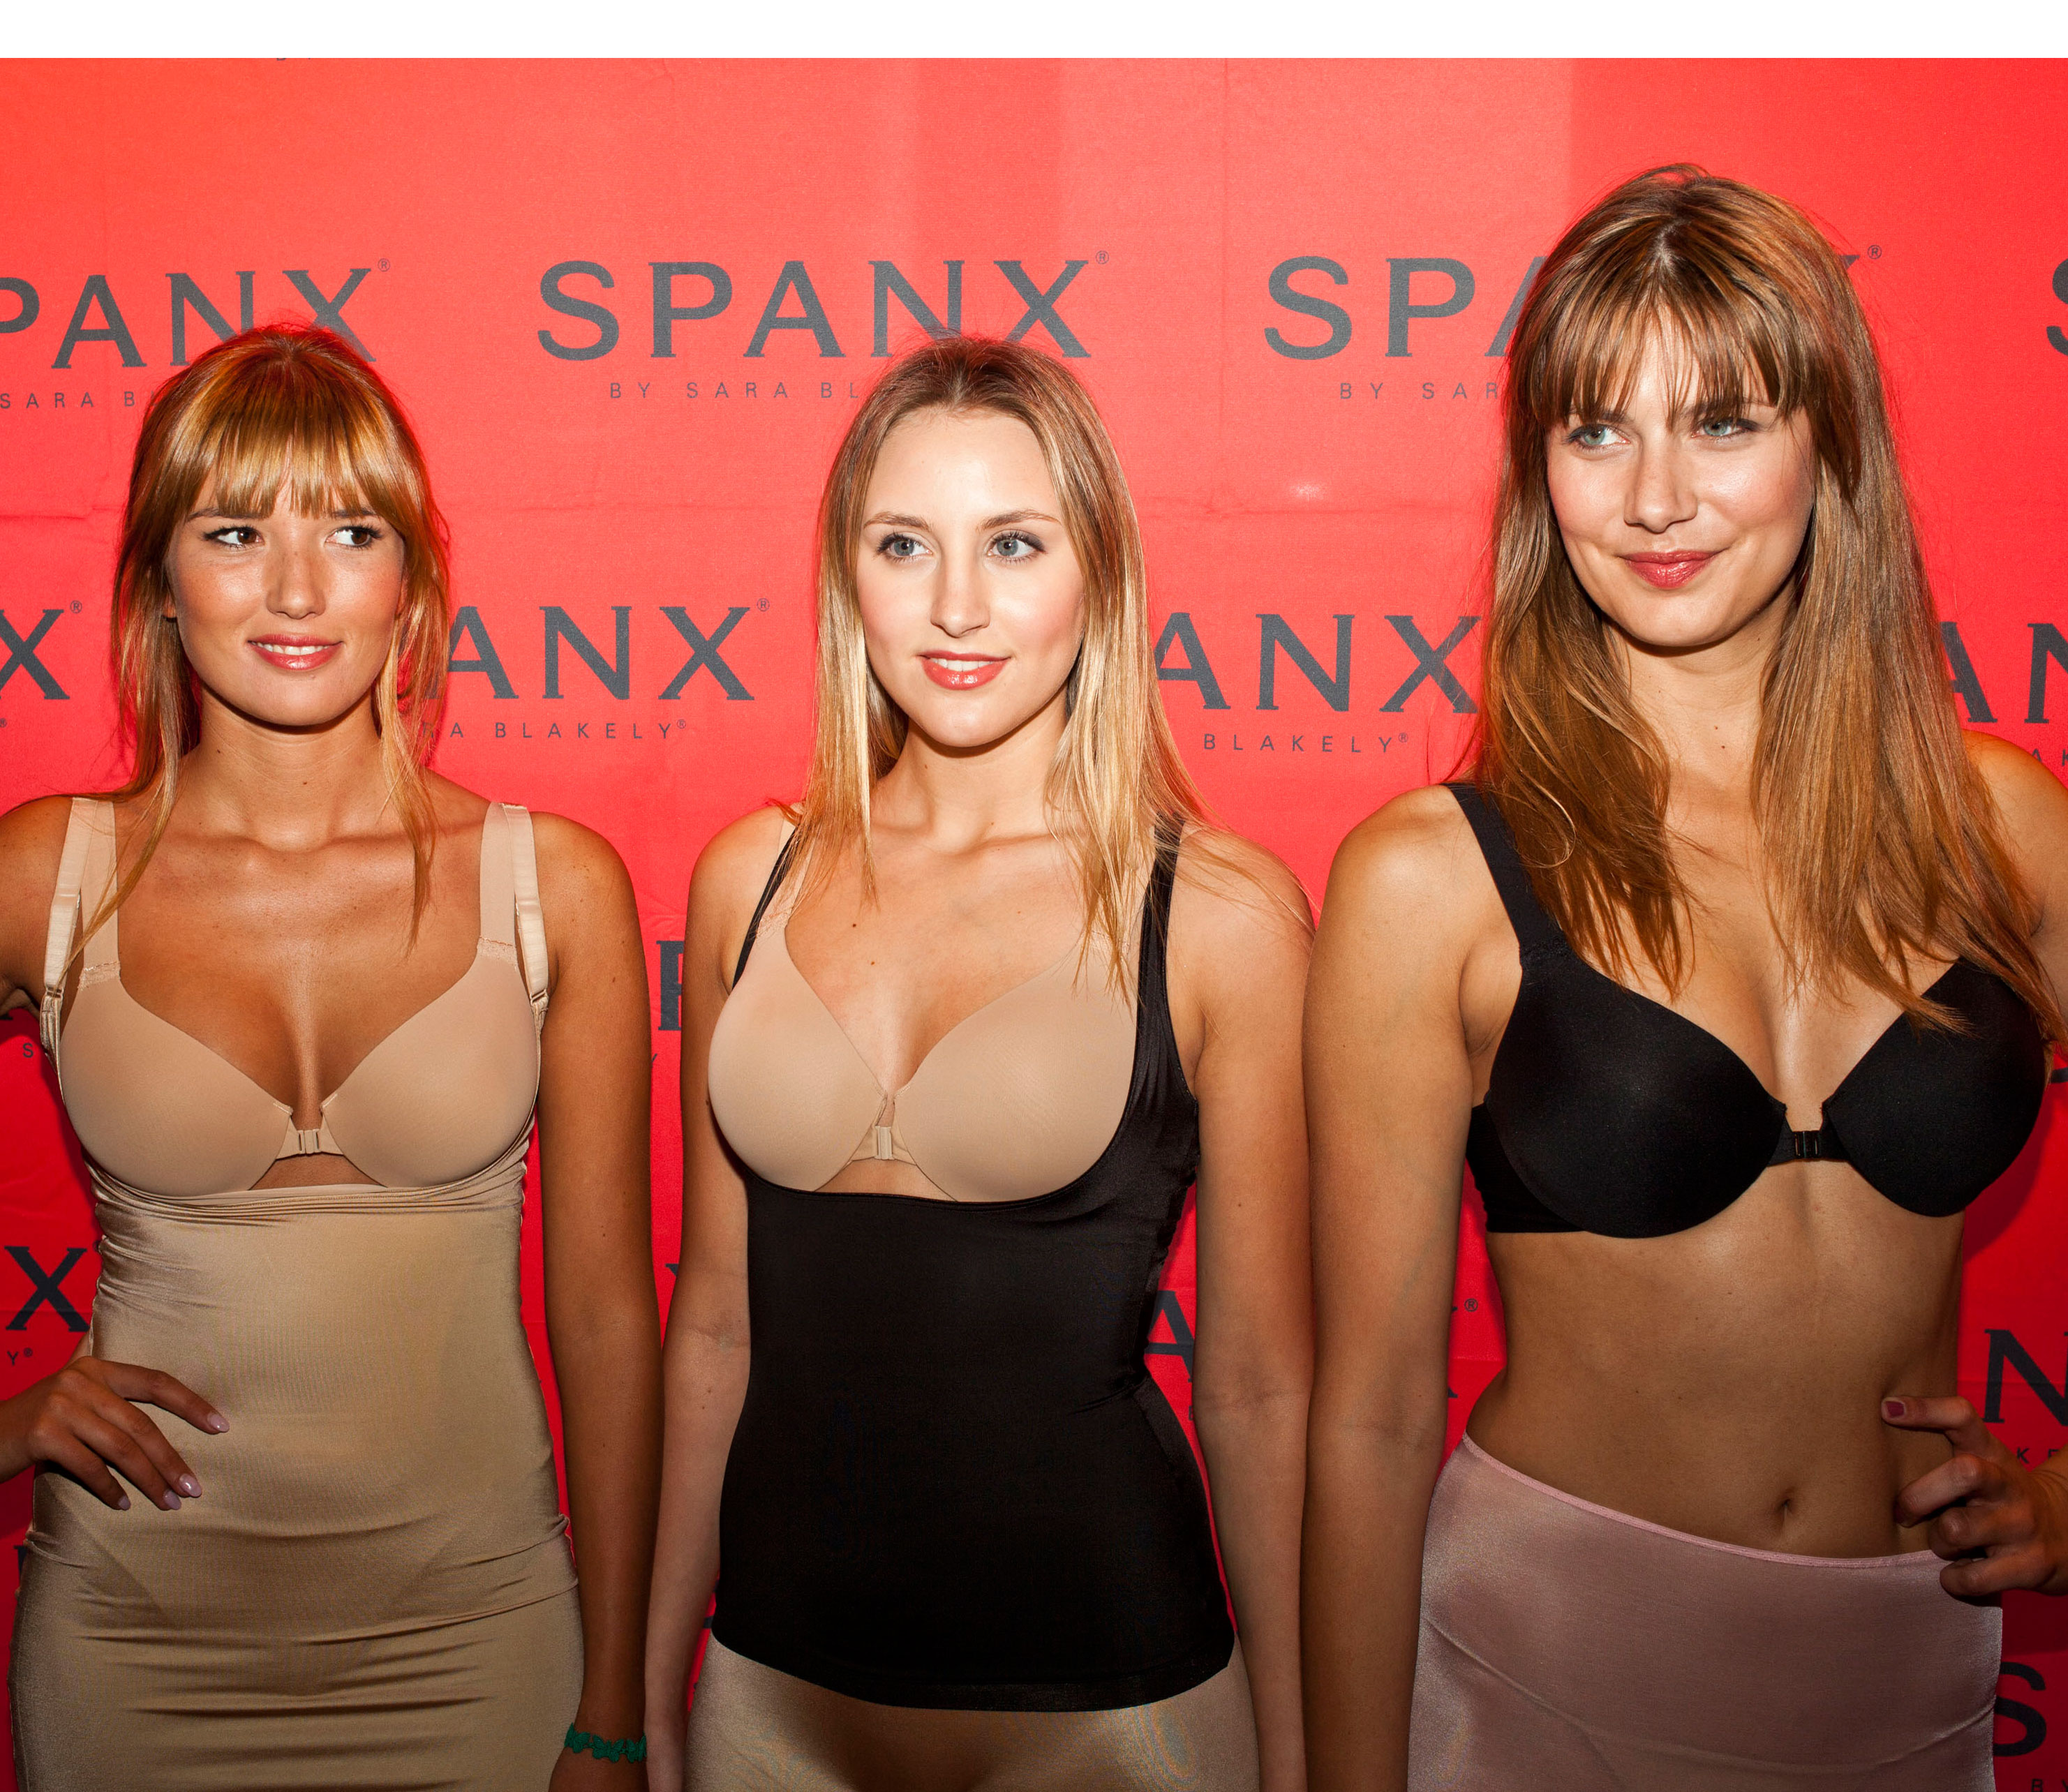 opening spanx